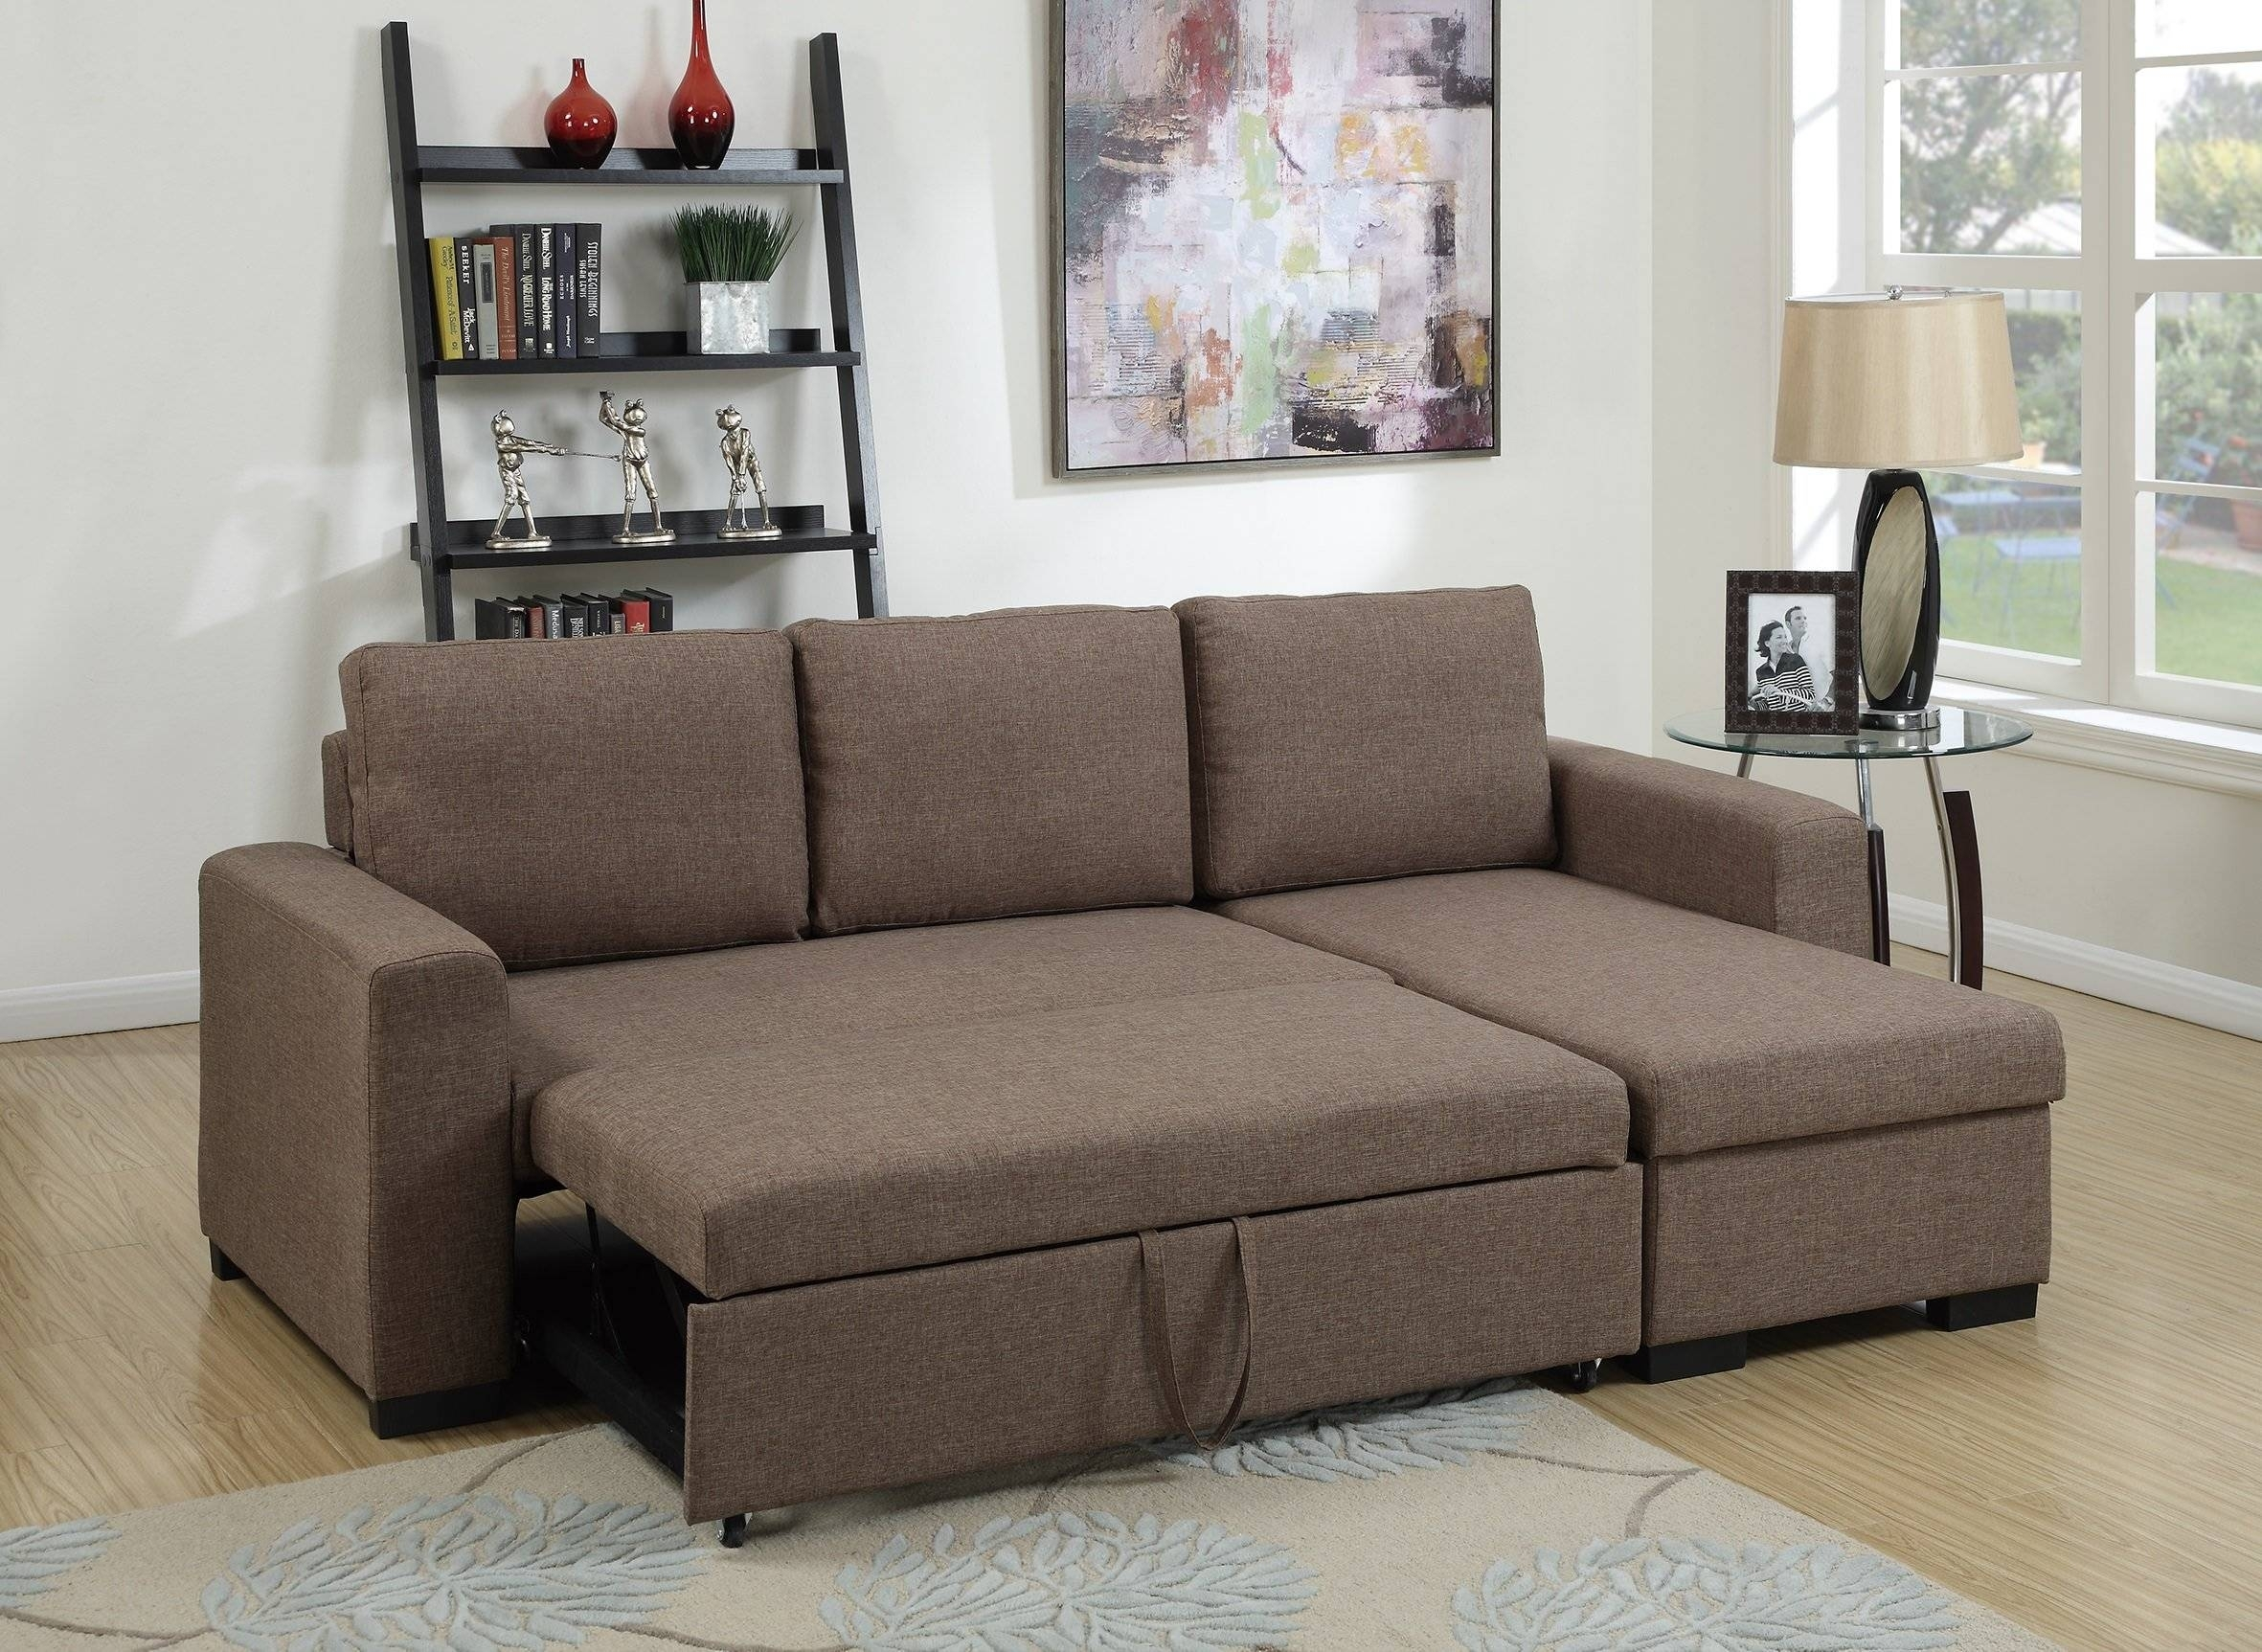 Apartment Size Sectional Sofa You Ll Love In 2020 Visualhunt